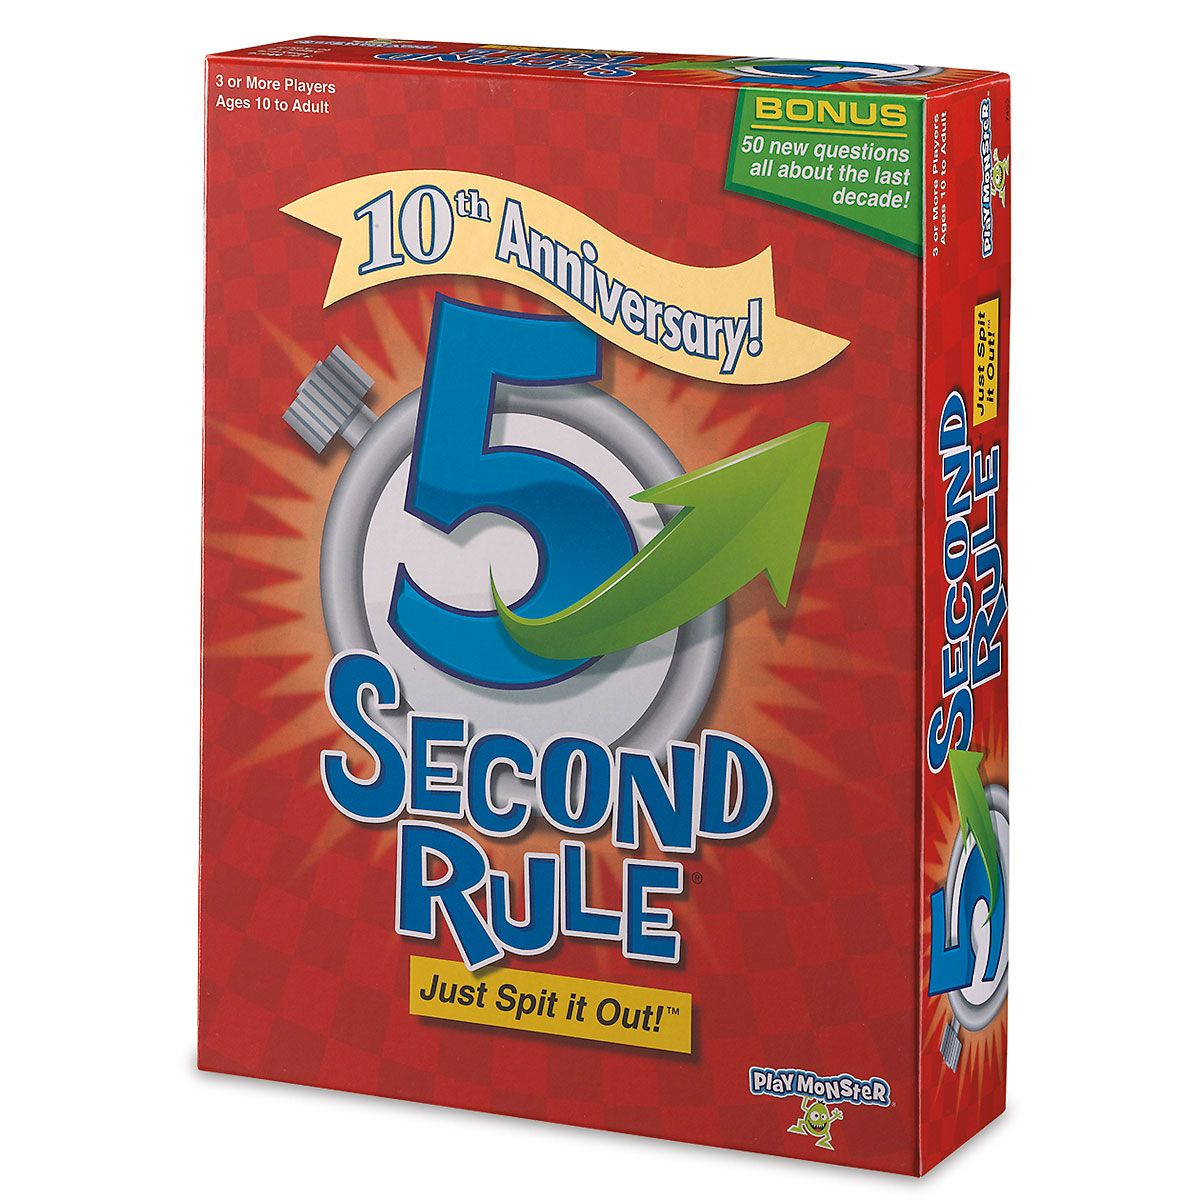 5-Second Rule 10th Anniversary Edition